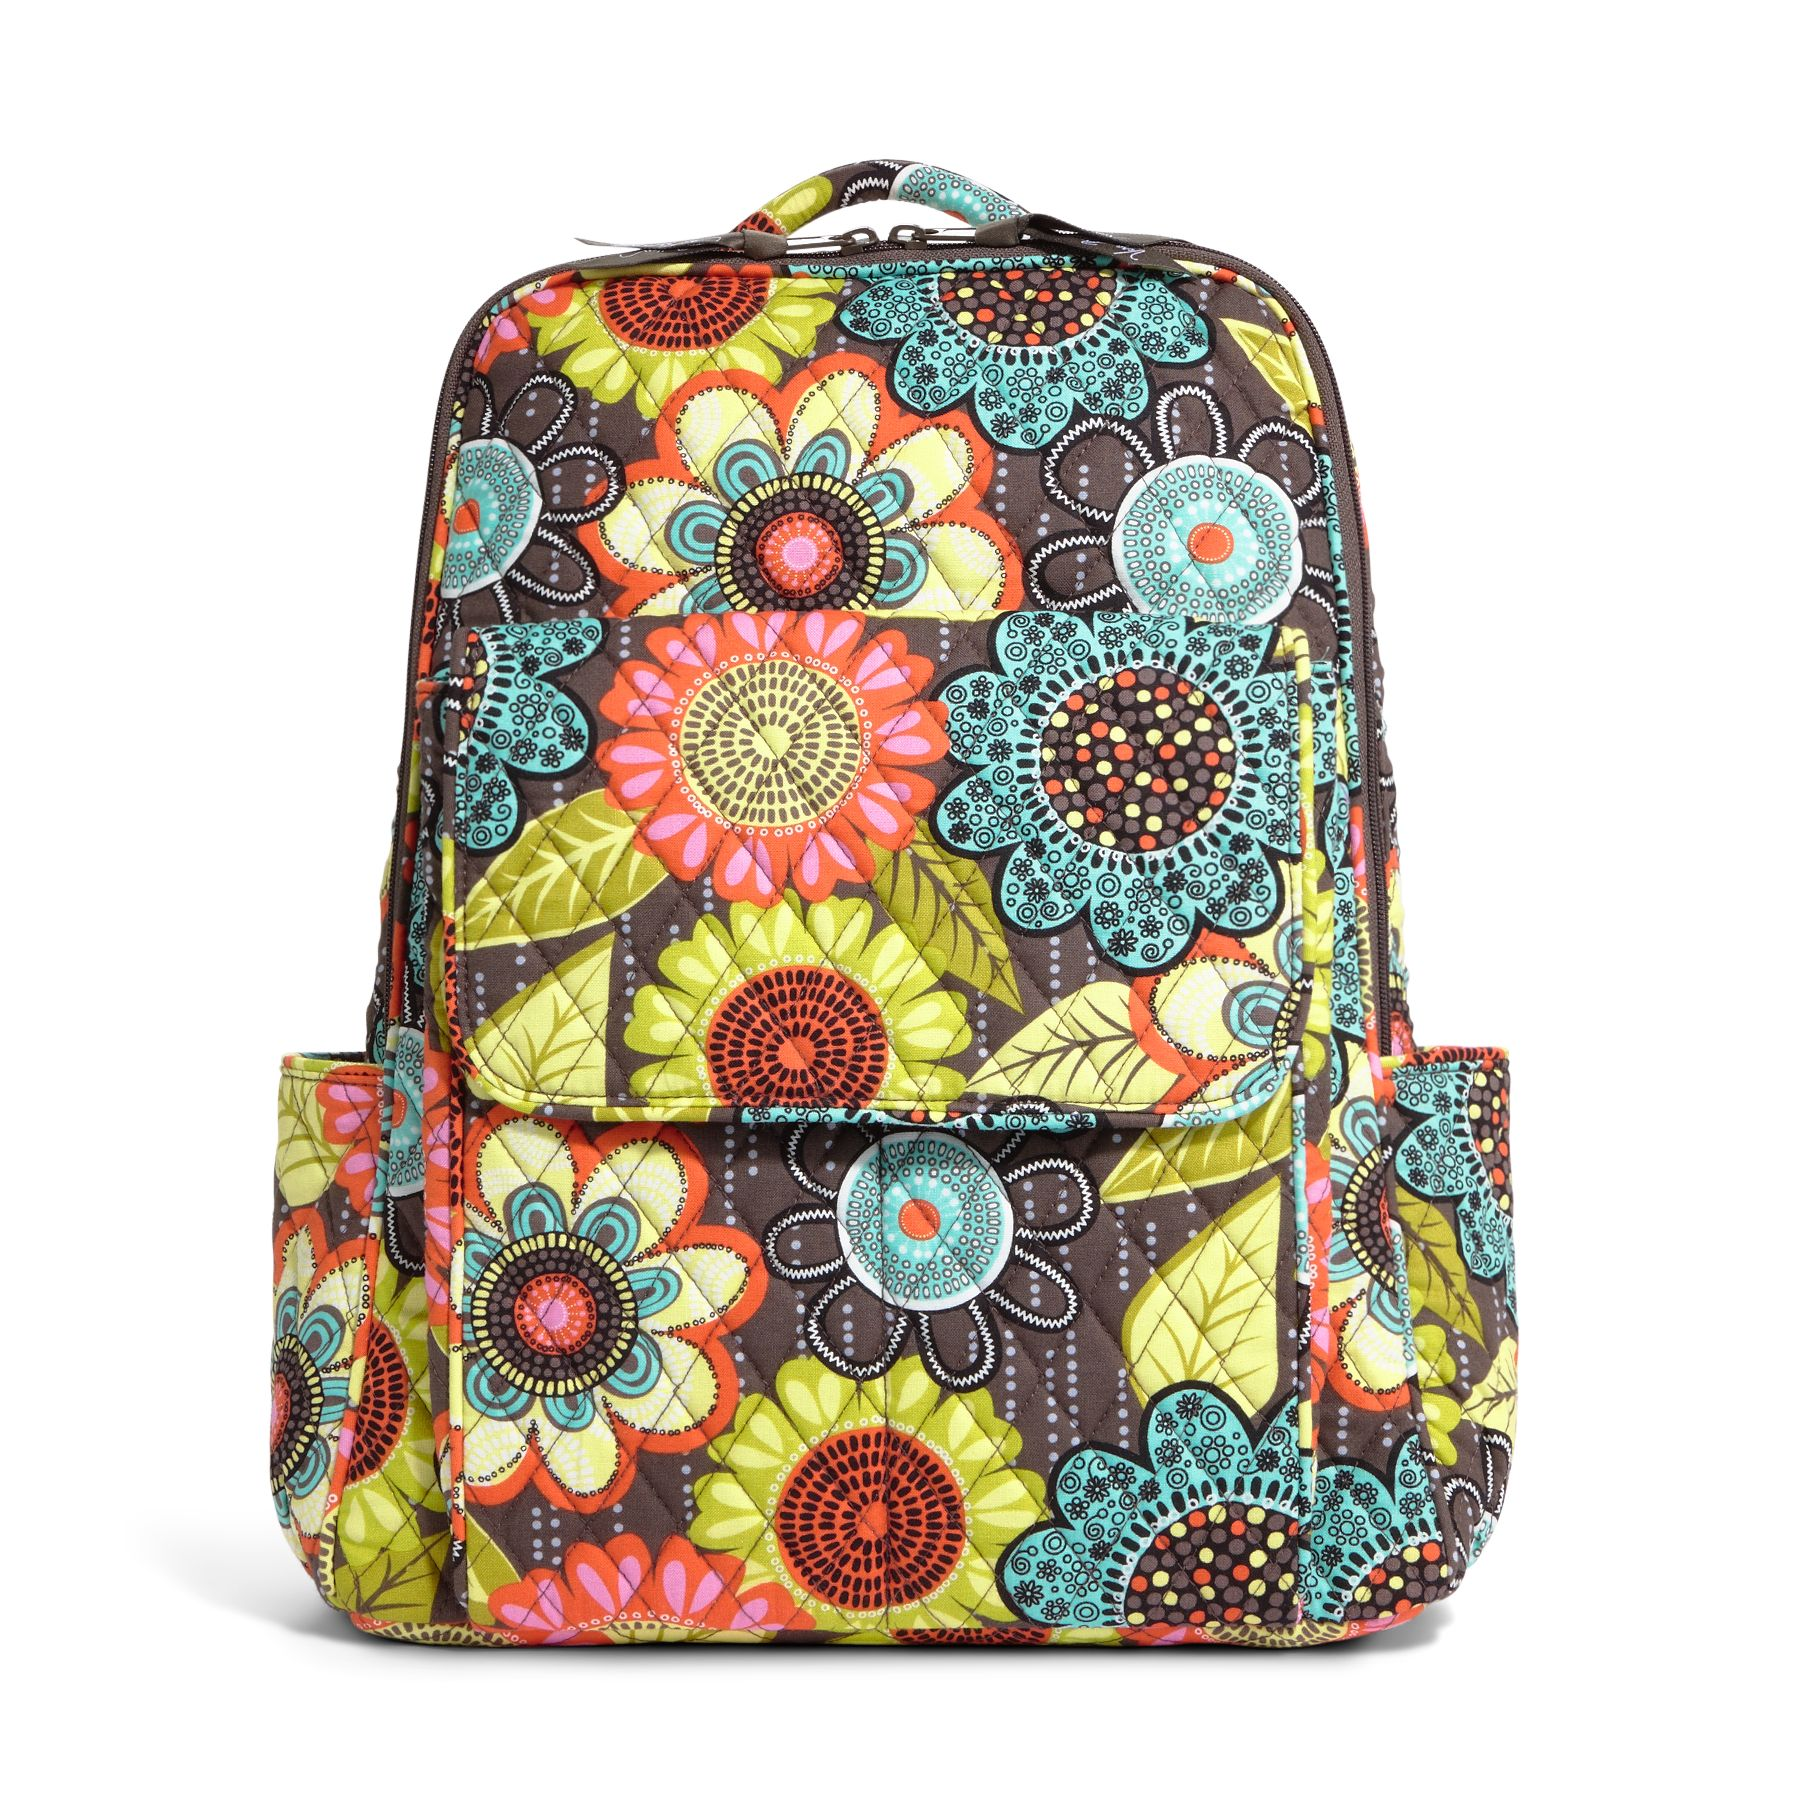 Vera Bradley Ultimate Backpack in Flower Shower